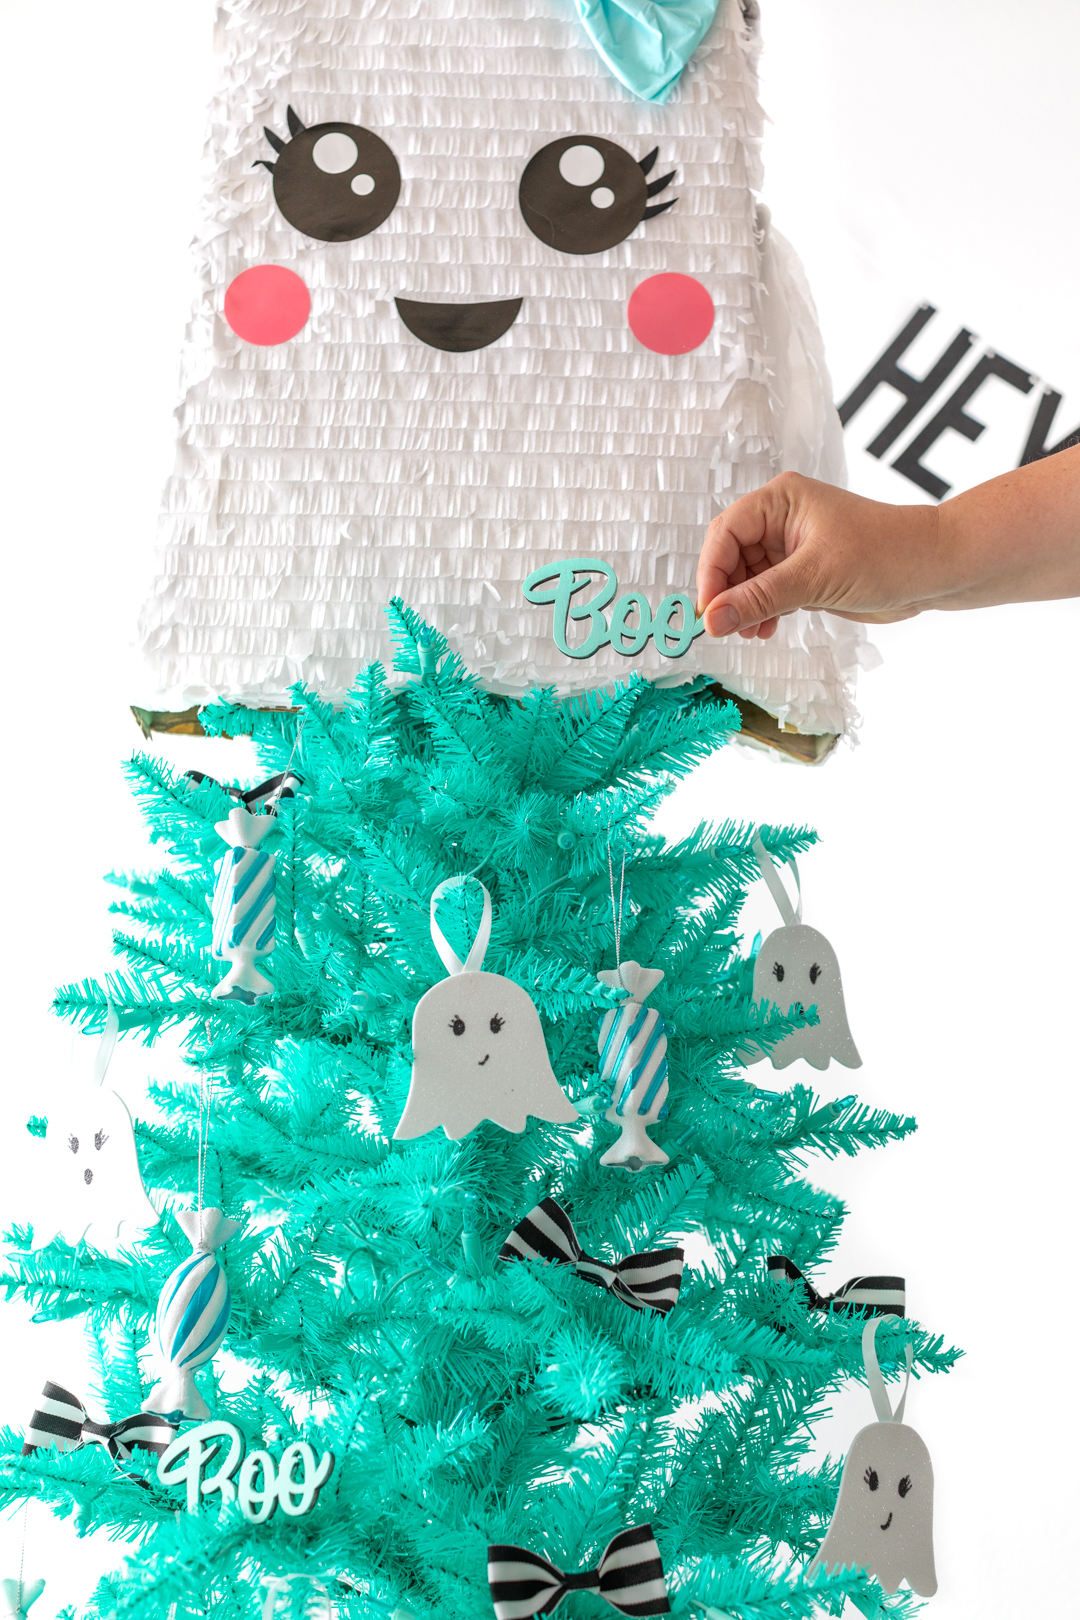 cute hand-painted boo sign being used as a christmas tree decoration for halloween